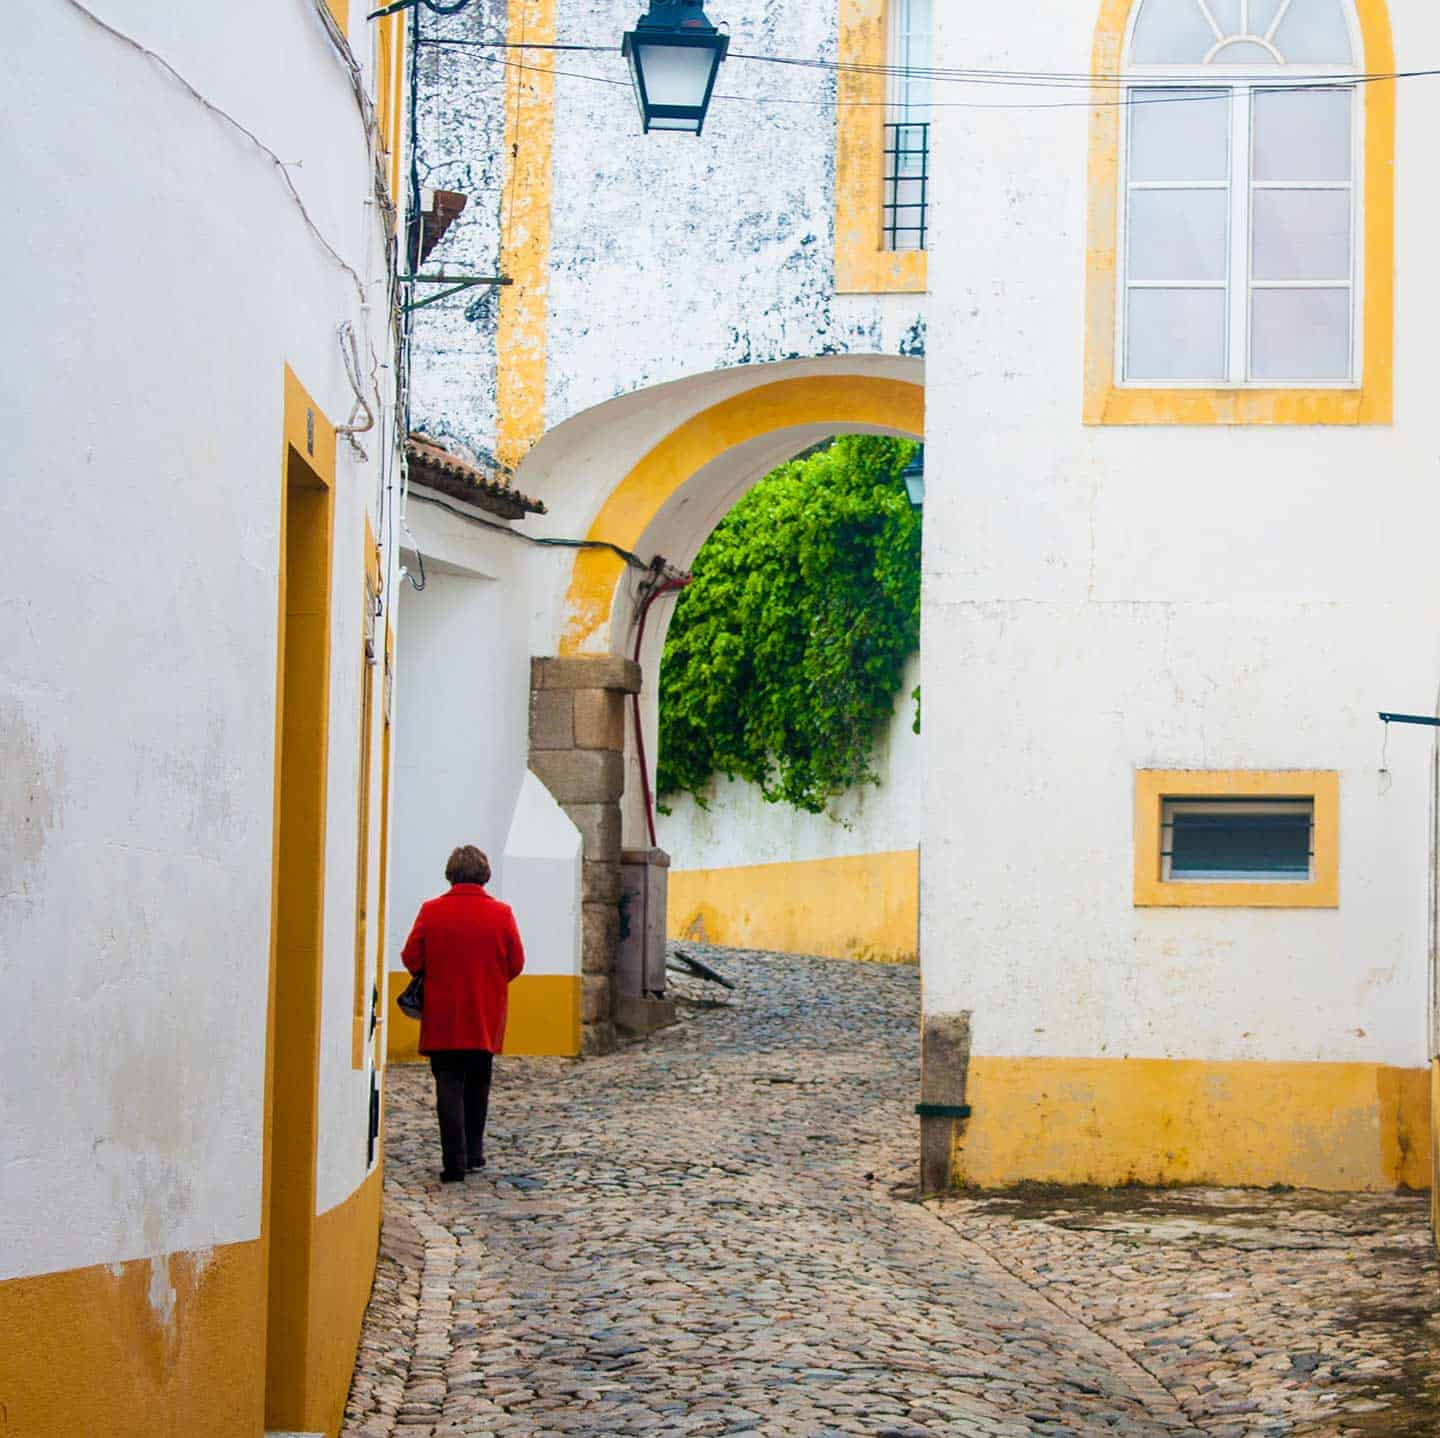 Image of a woman walking through the cobbled streets of Evora's old town